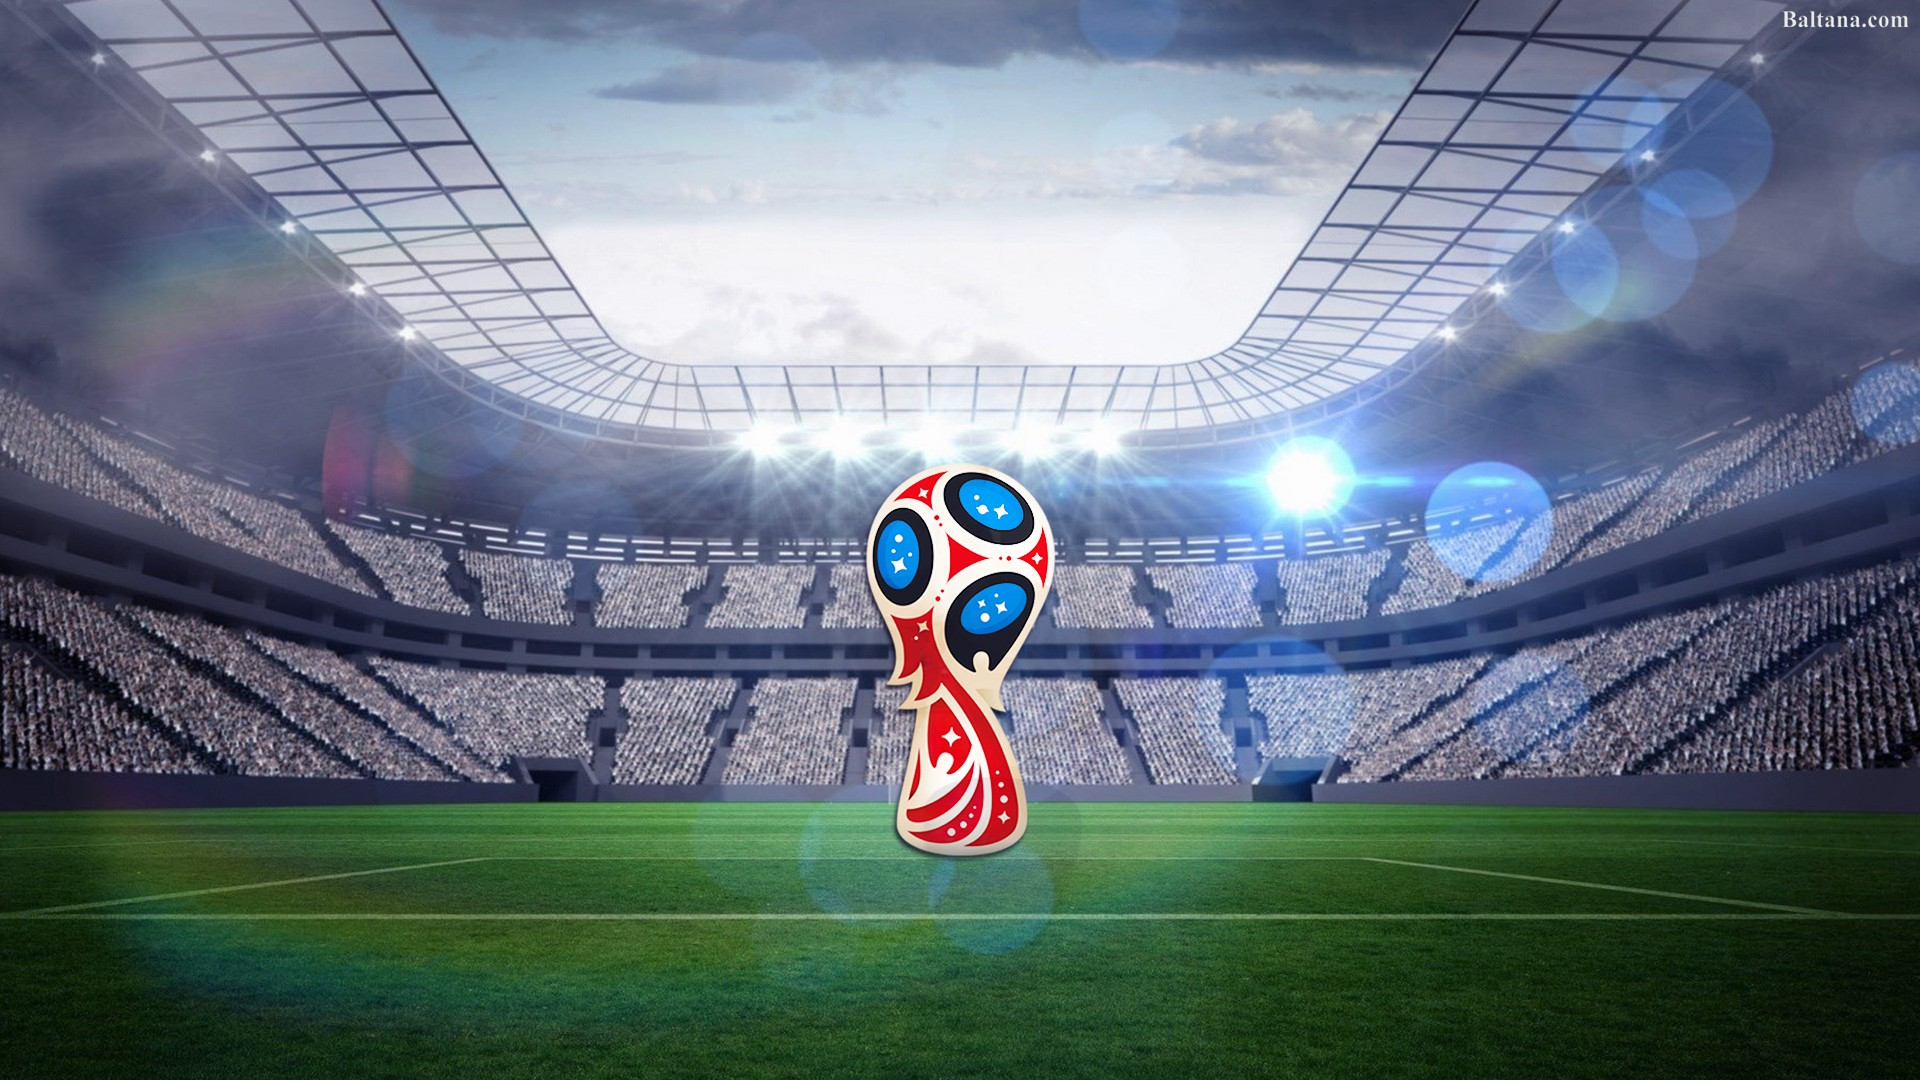 1920x1080 - FIFA World Cup 2018 Wallpapers 15